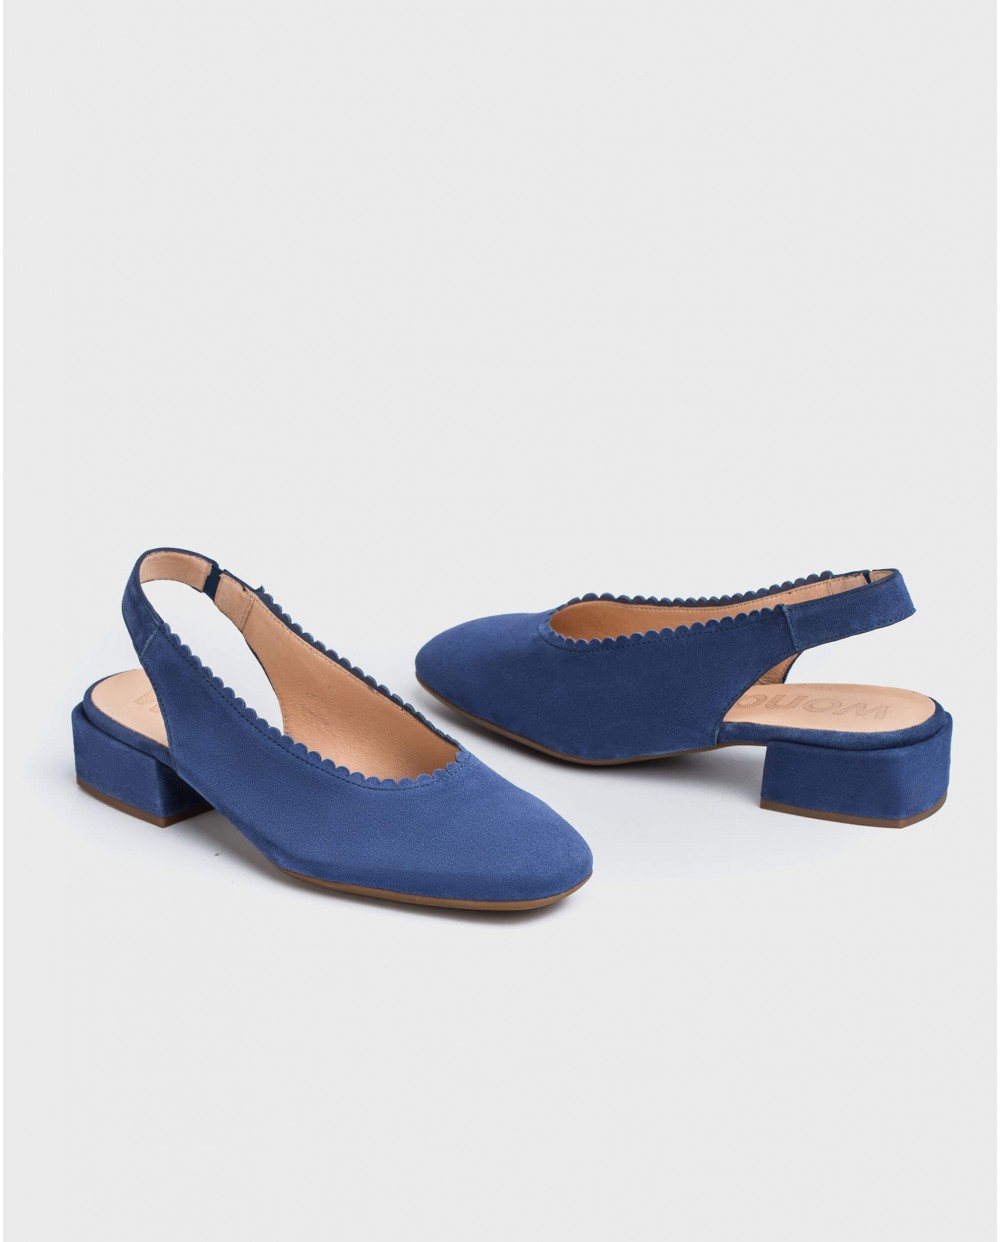 Wonders-Flat Shoes-shoe with a semi-circle cut detail